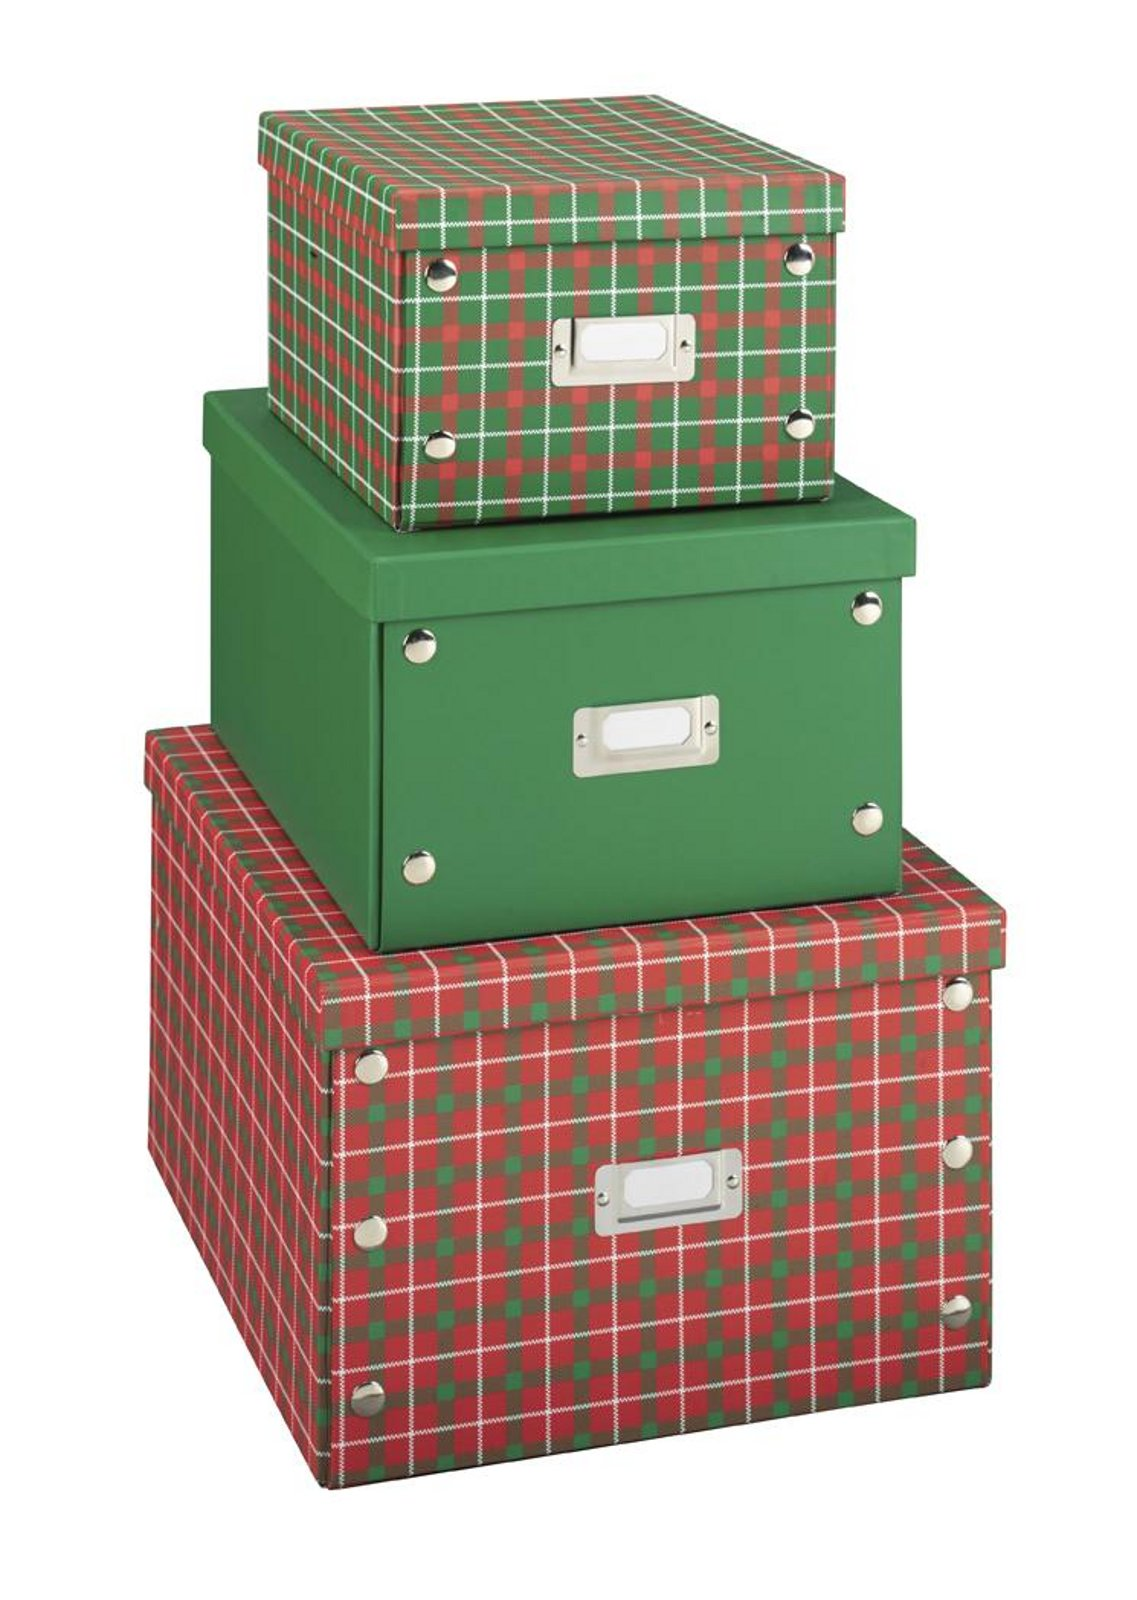 Essential Home 3 Piece Stackable Christmas Storage Bo 1 4 At Kmart Saving With Vetta Couponing